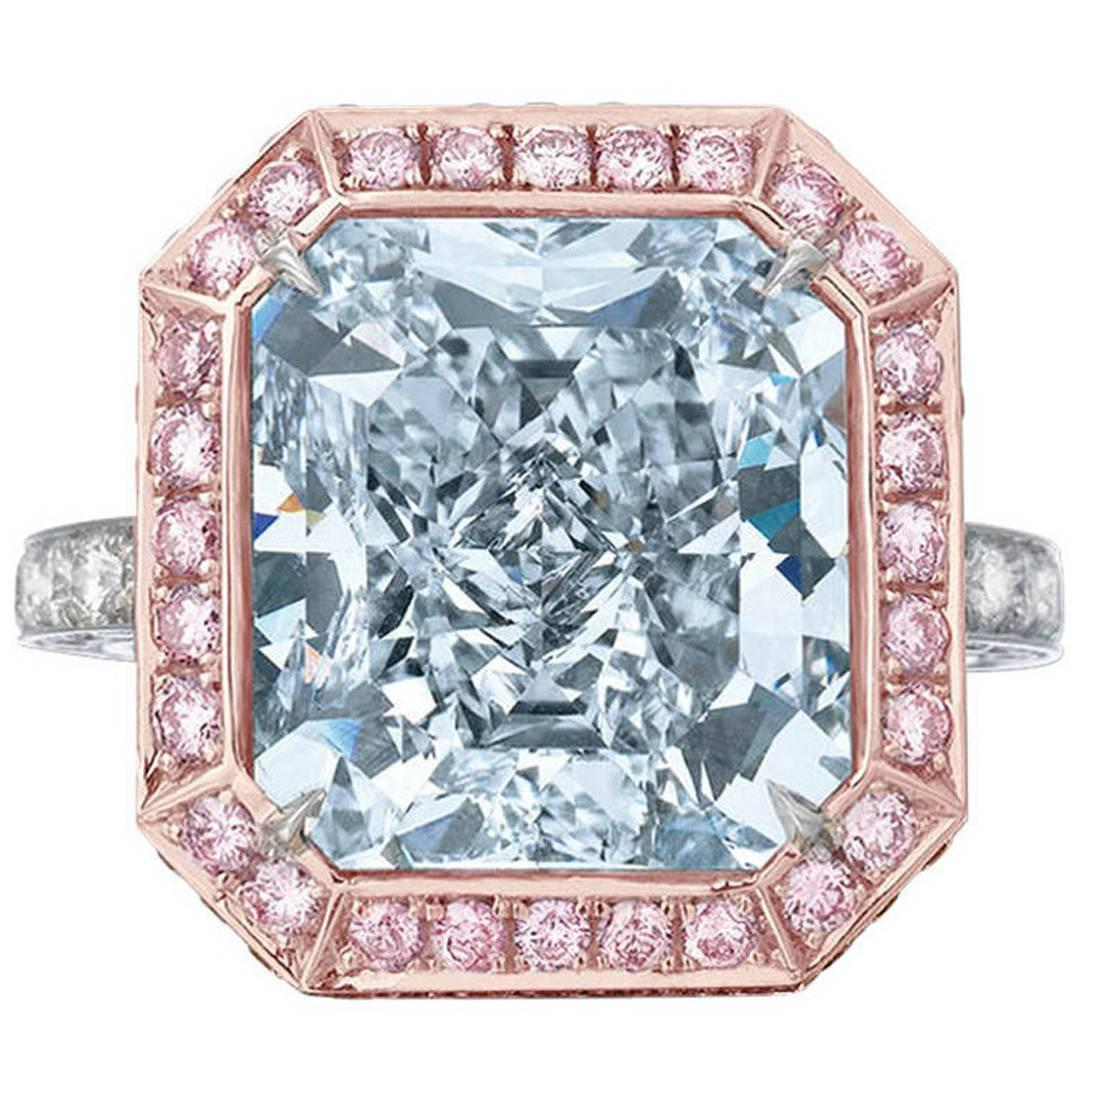 The Royal Blue Diamond 10.06 Carats 1